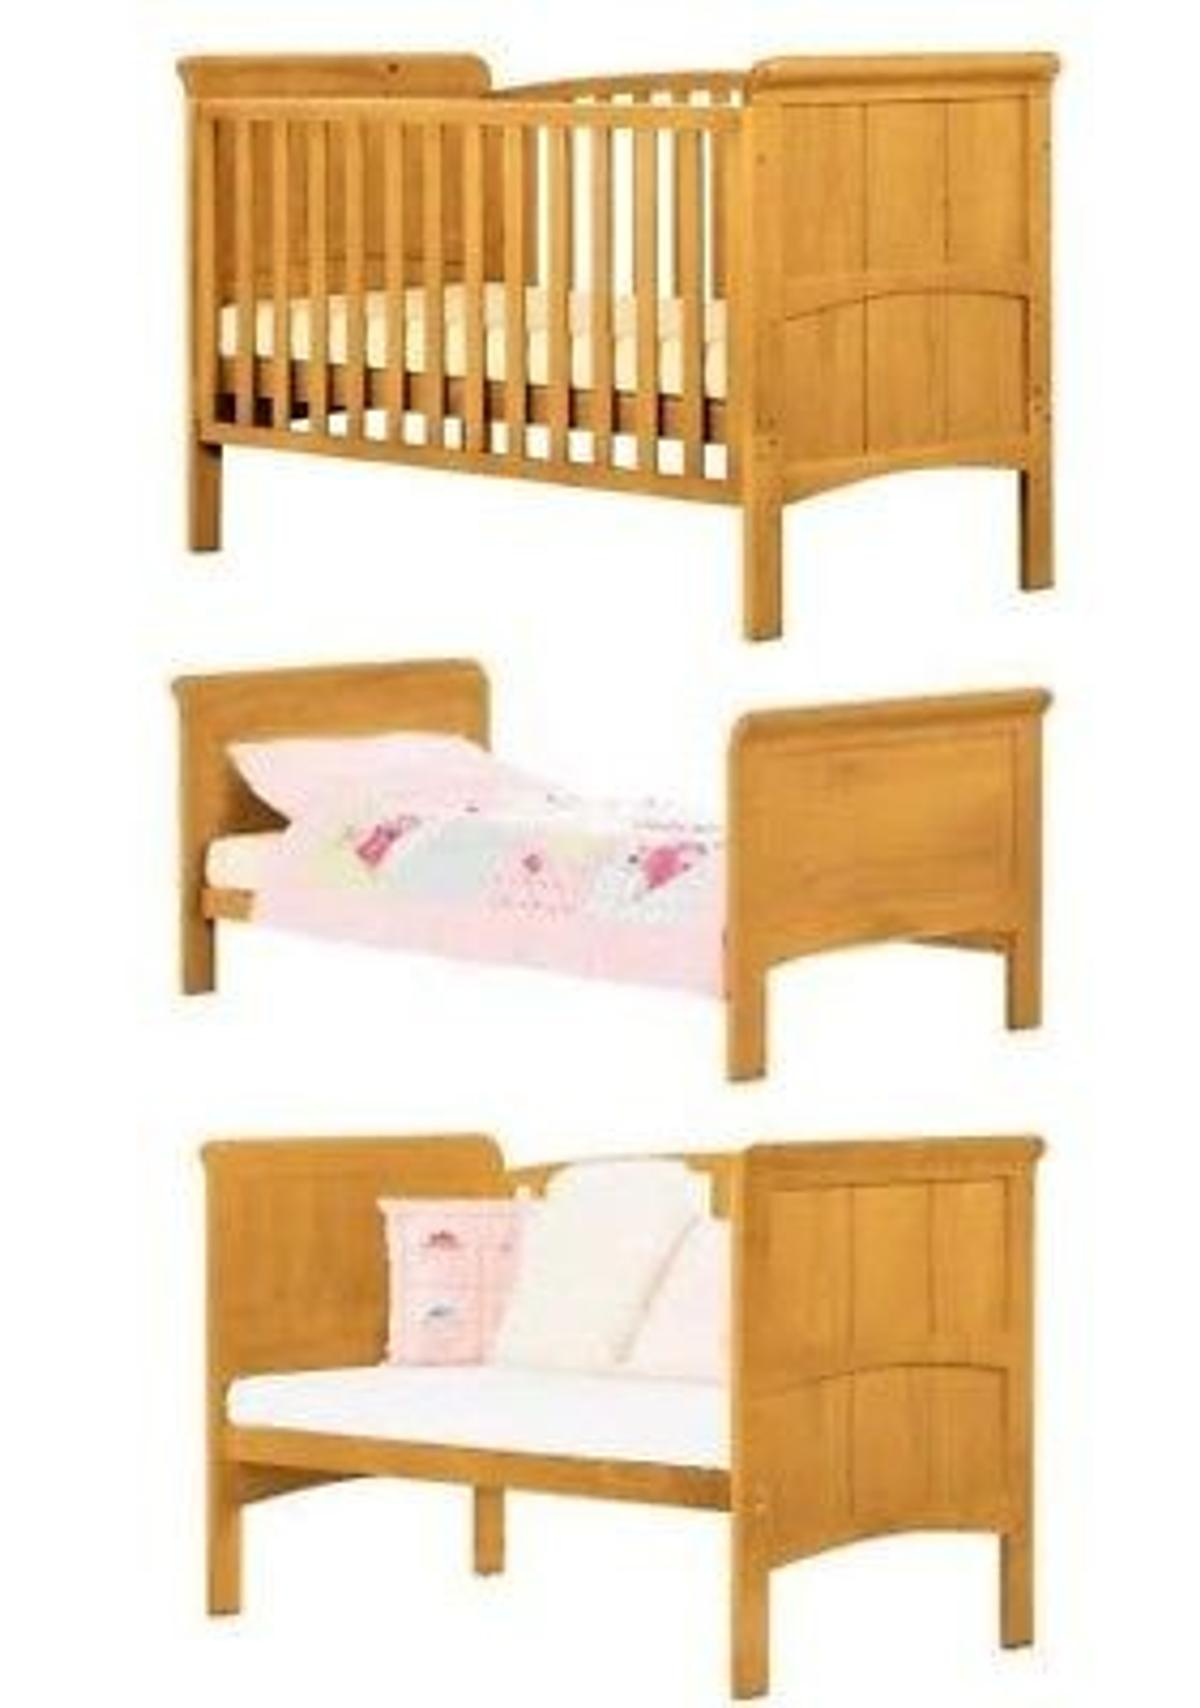 sale retailer 79ec1 cfb37 Tuscany 3 in 1 cot bed toys r us